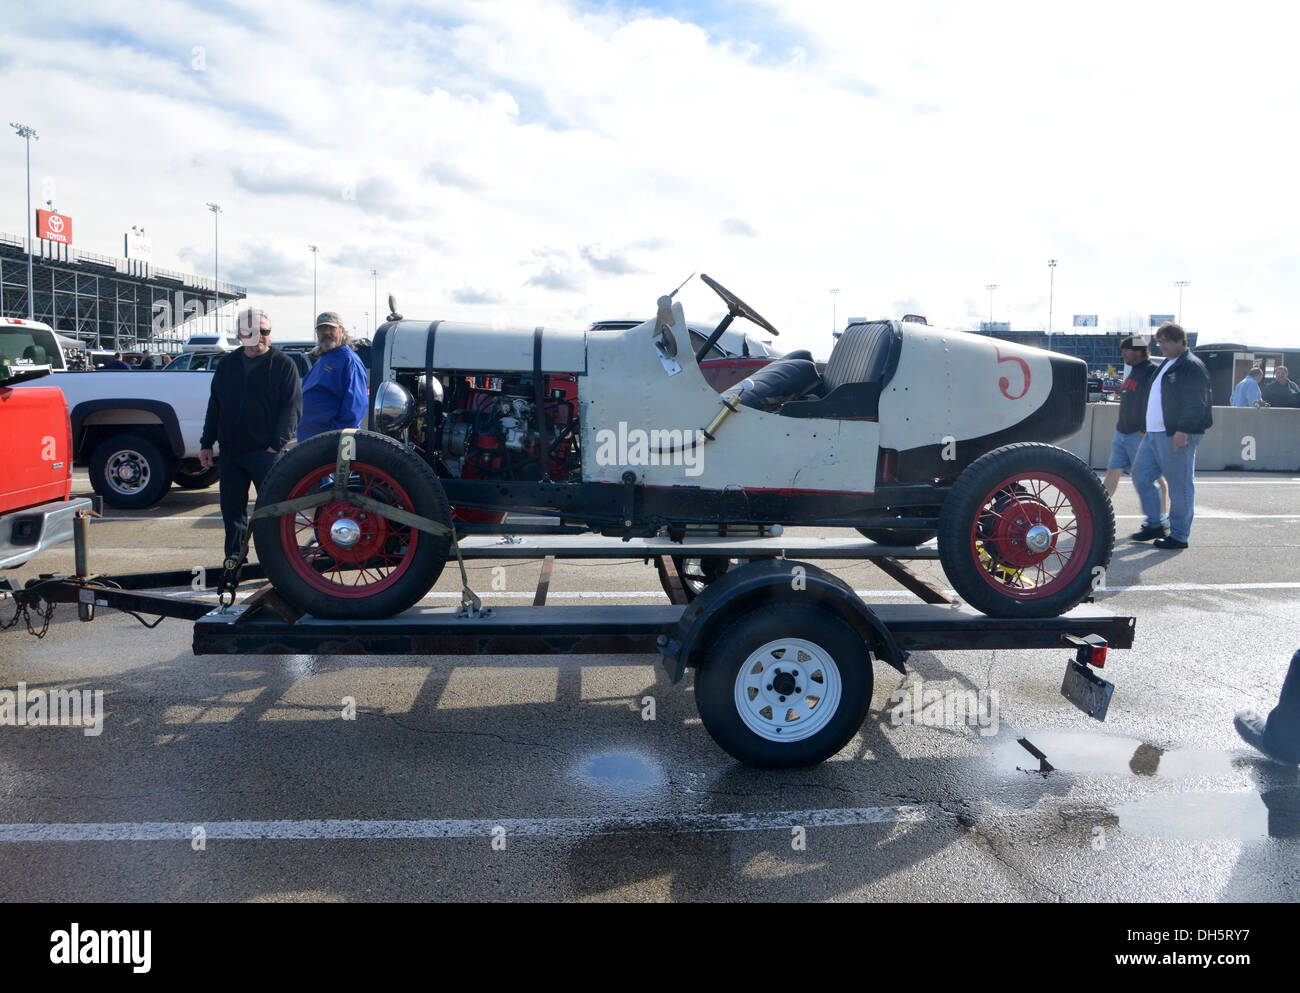 auto jumble stock photos & auto jumble stock images - alamy